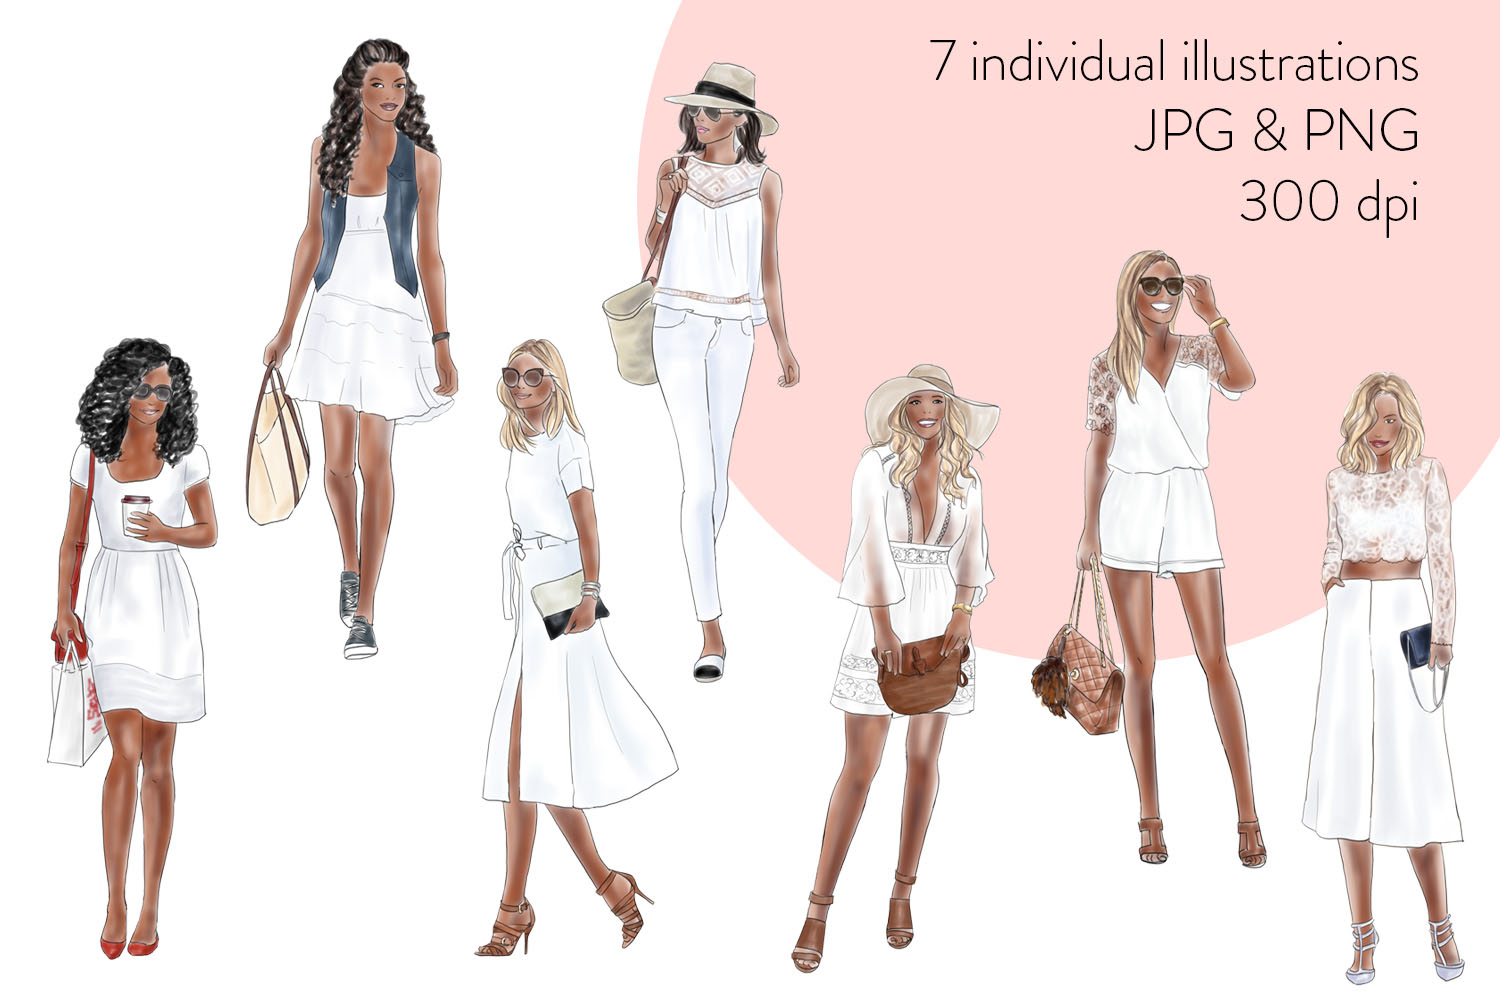 Fashion illustration clipart - Girls in summer white - Dark skin example image 2